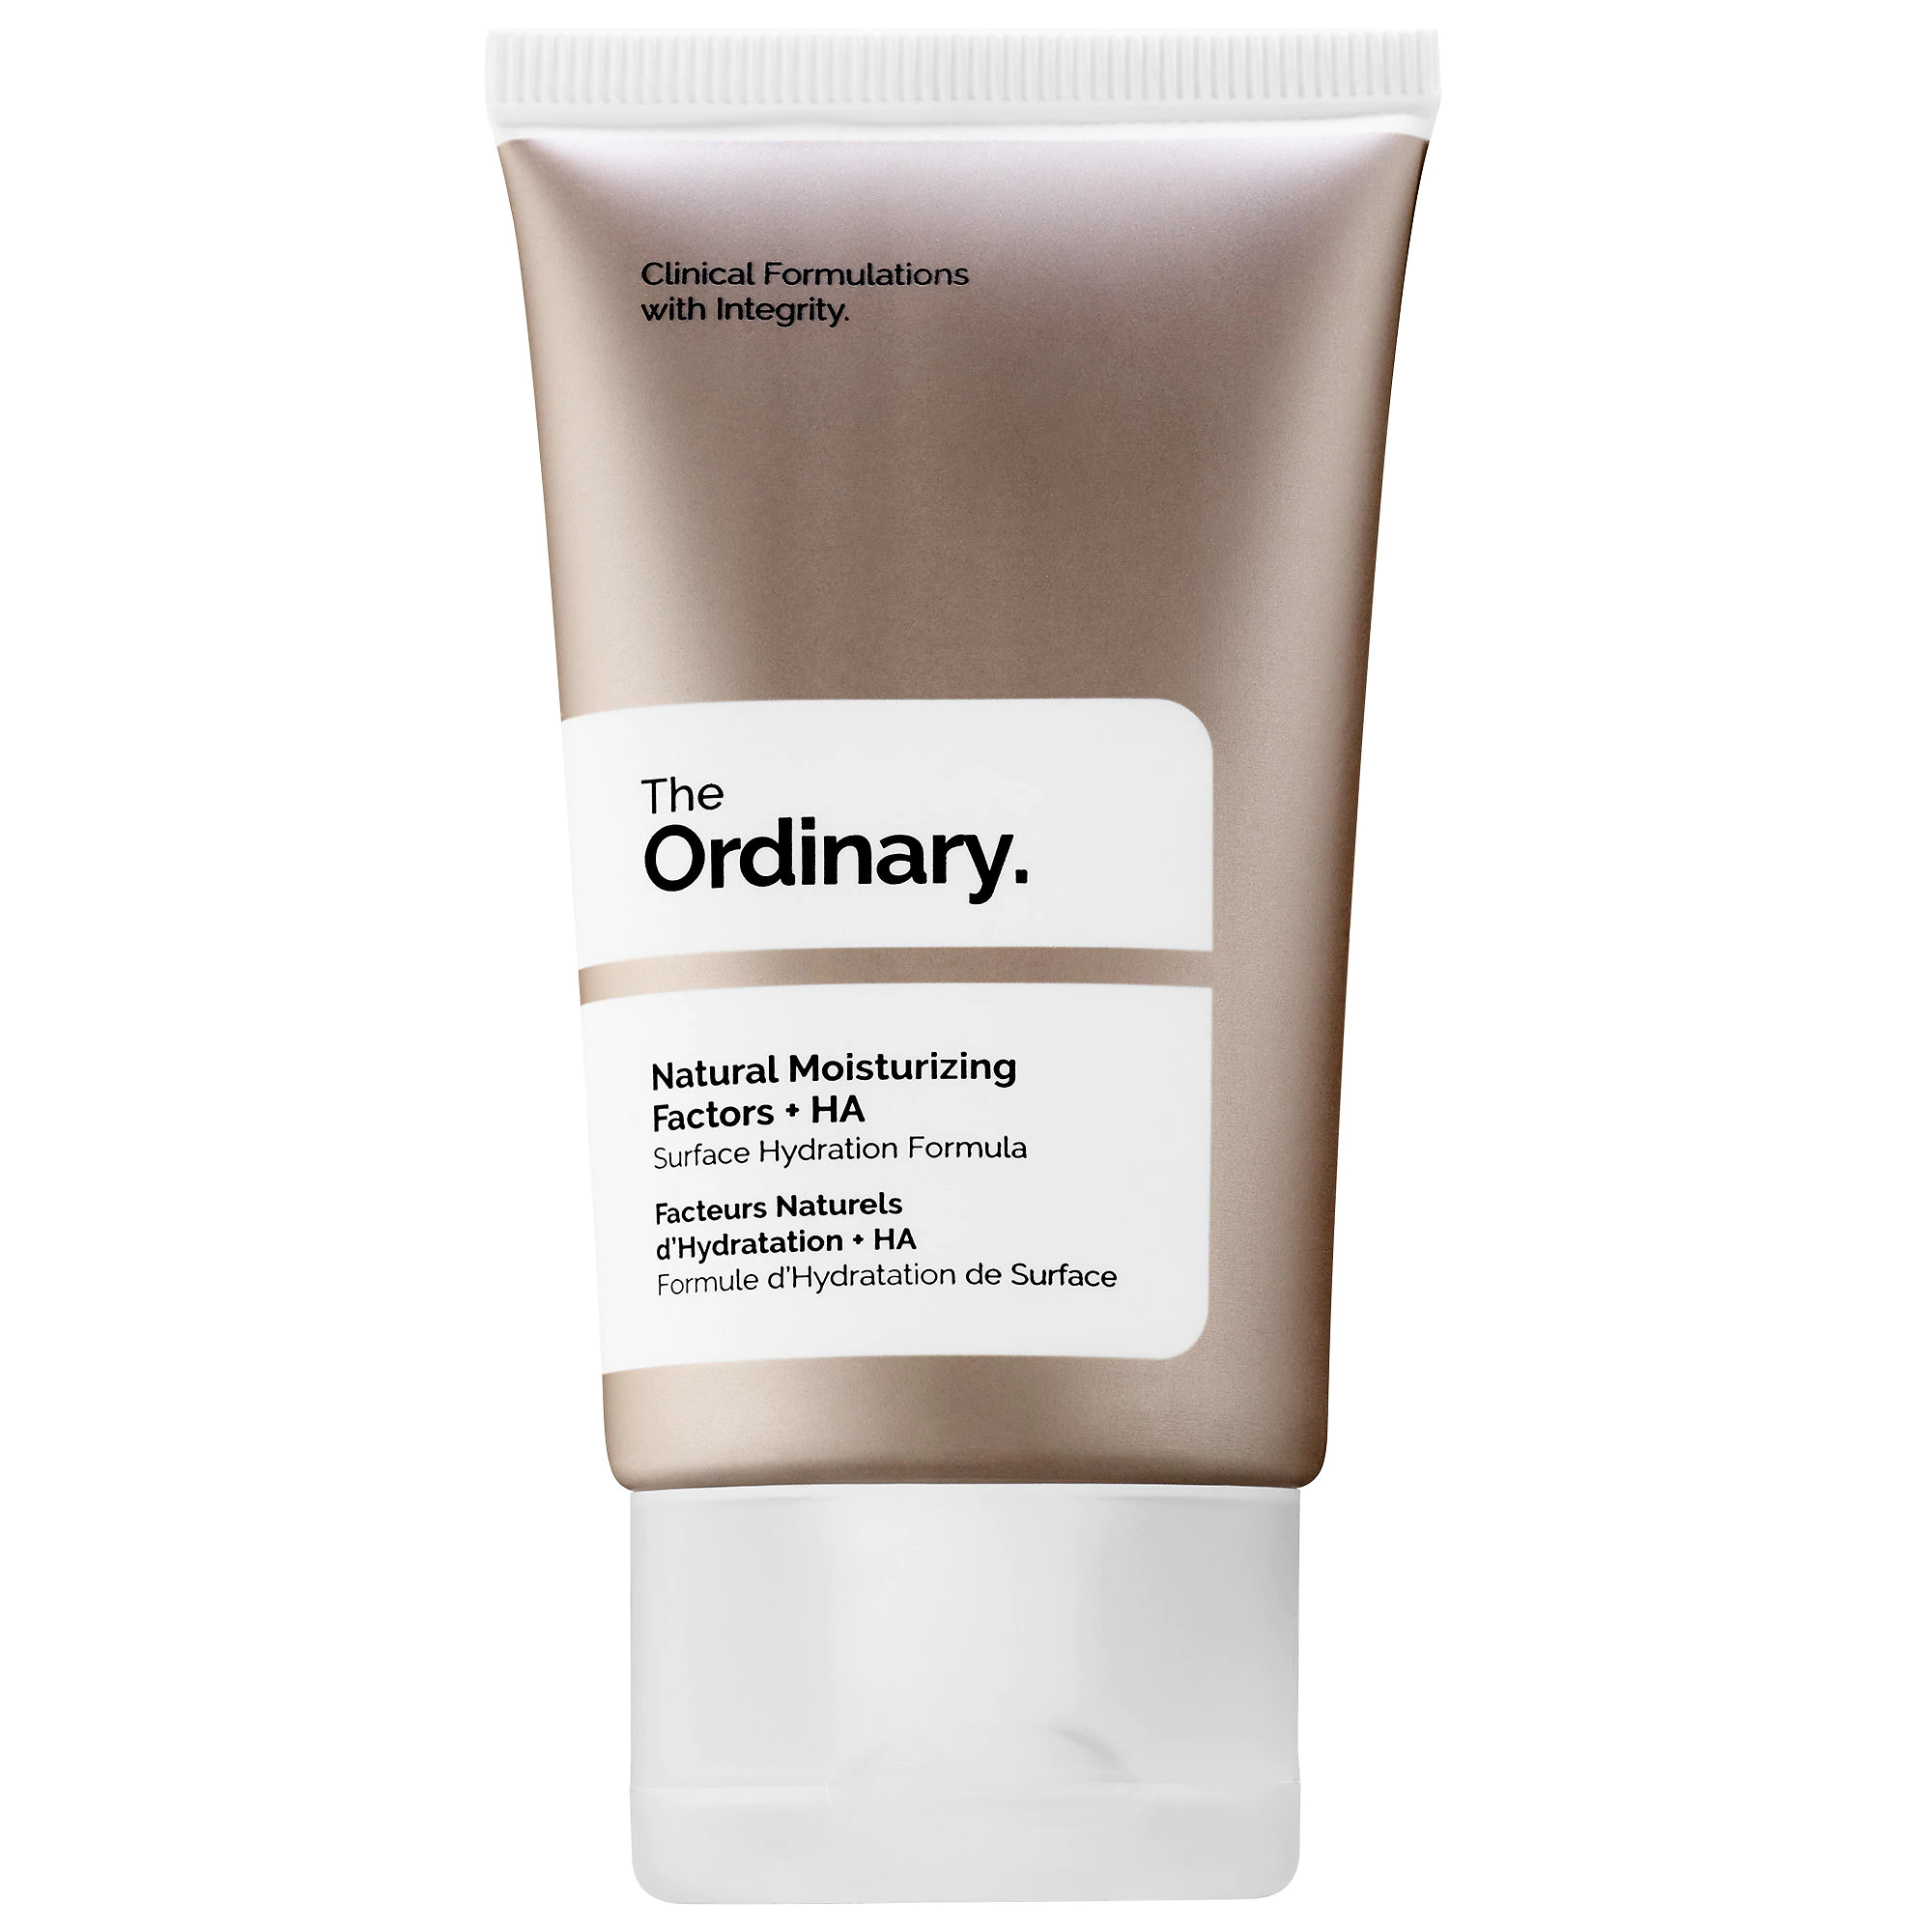 The Ordinary-Natural Moisturizing Factors + Ha